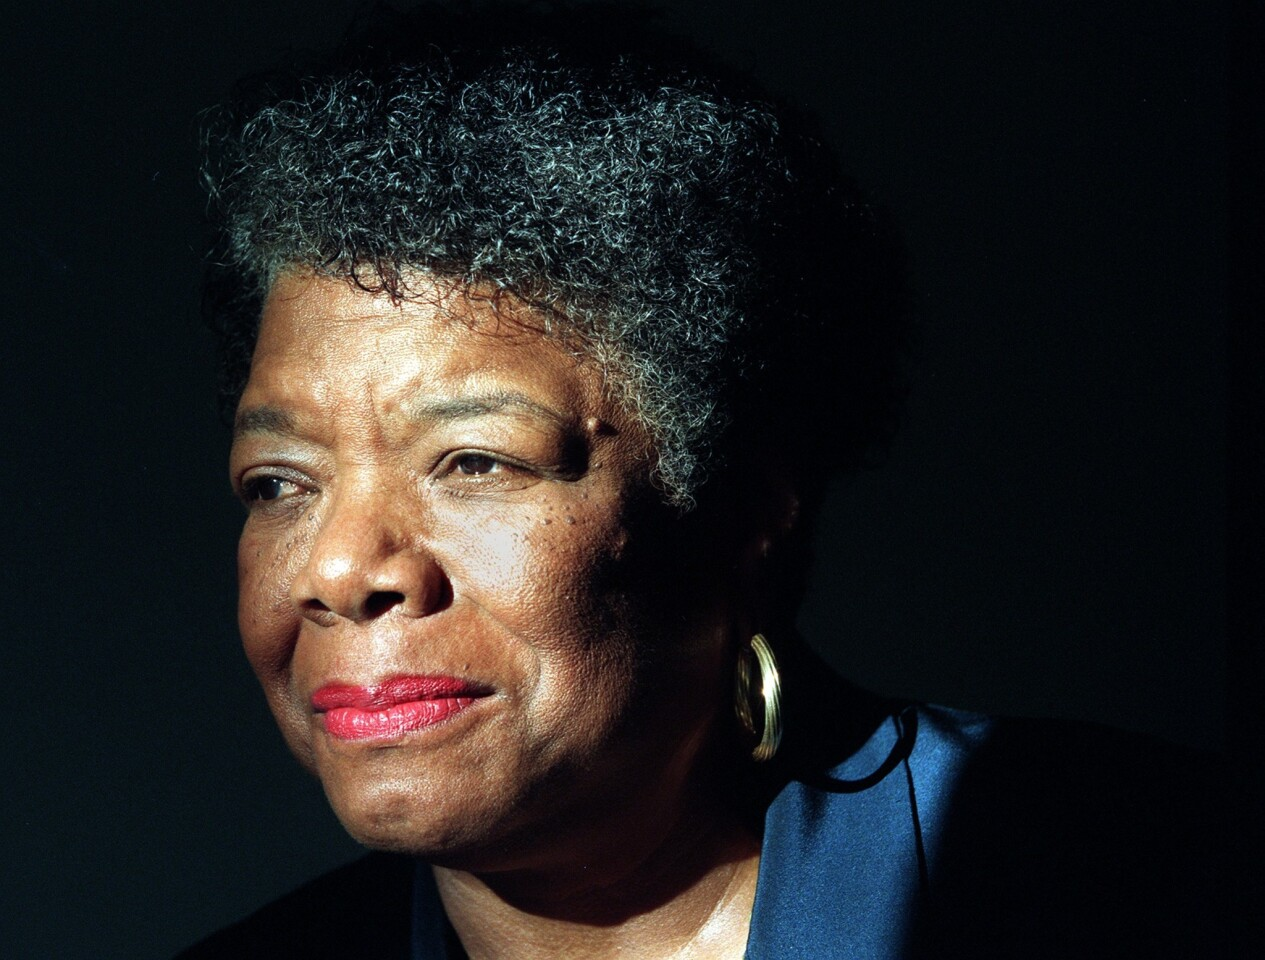 Maya Angelou -- poet, educator, historian, author, playwright, activist, director and more -- had an exceptional entertainment presence among her many accomplishments.